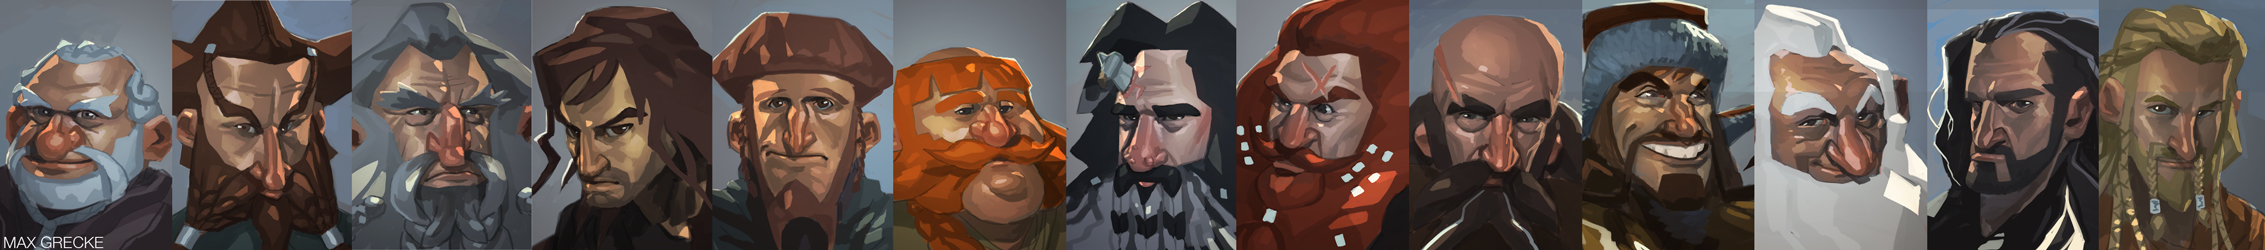 THE HOBBIT: all 13 dwarves by MaxGrecke